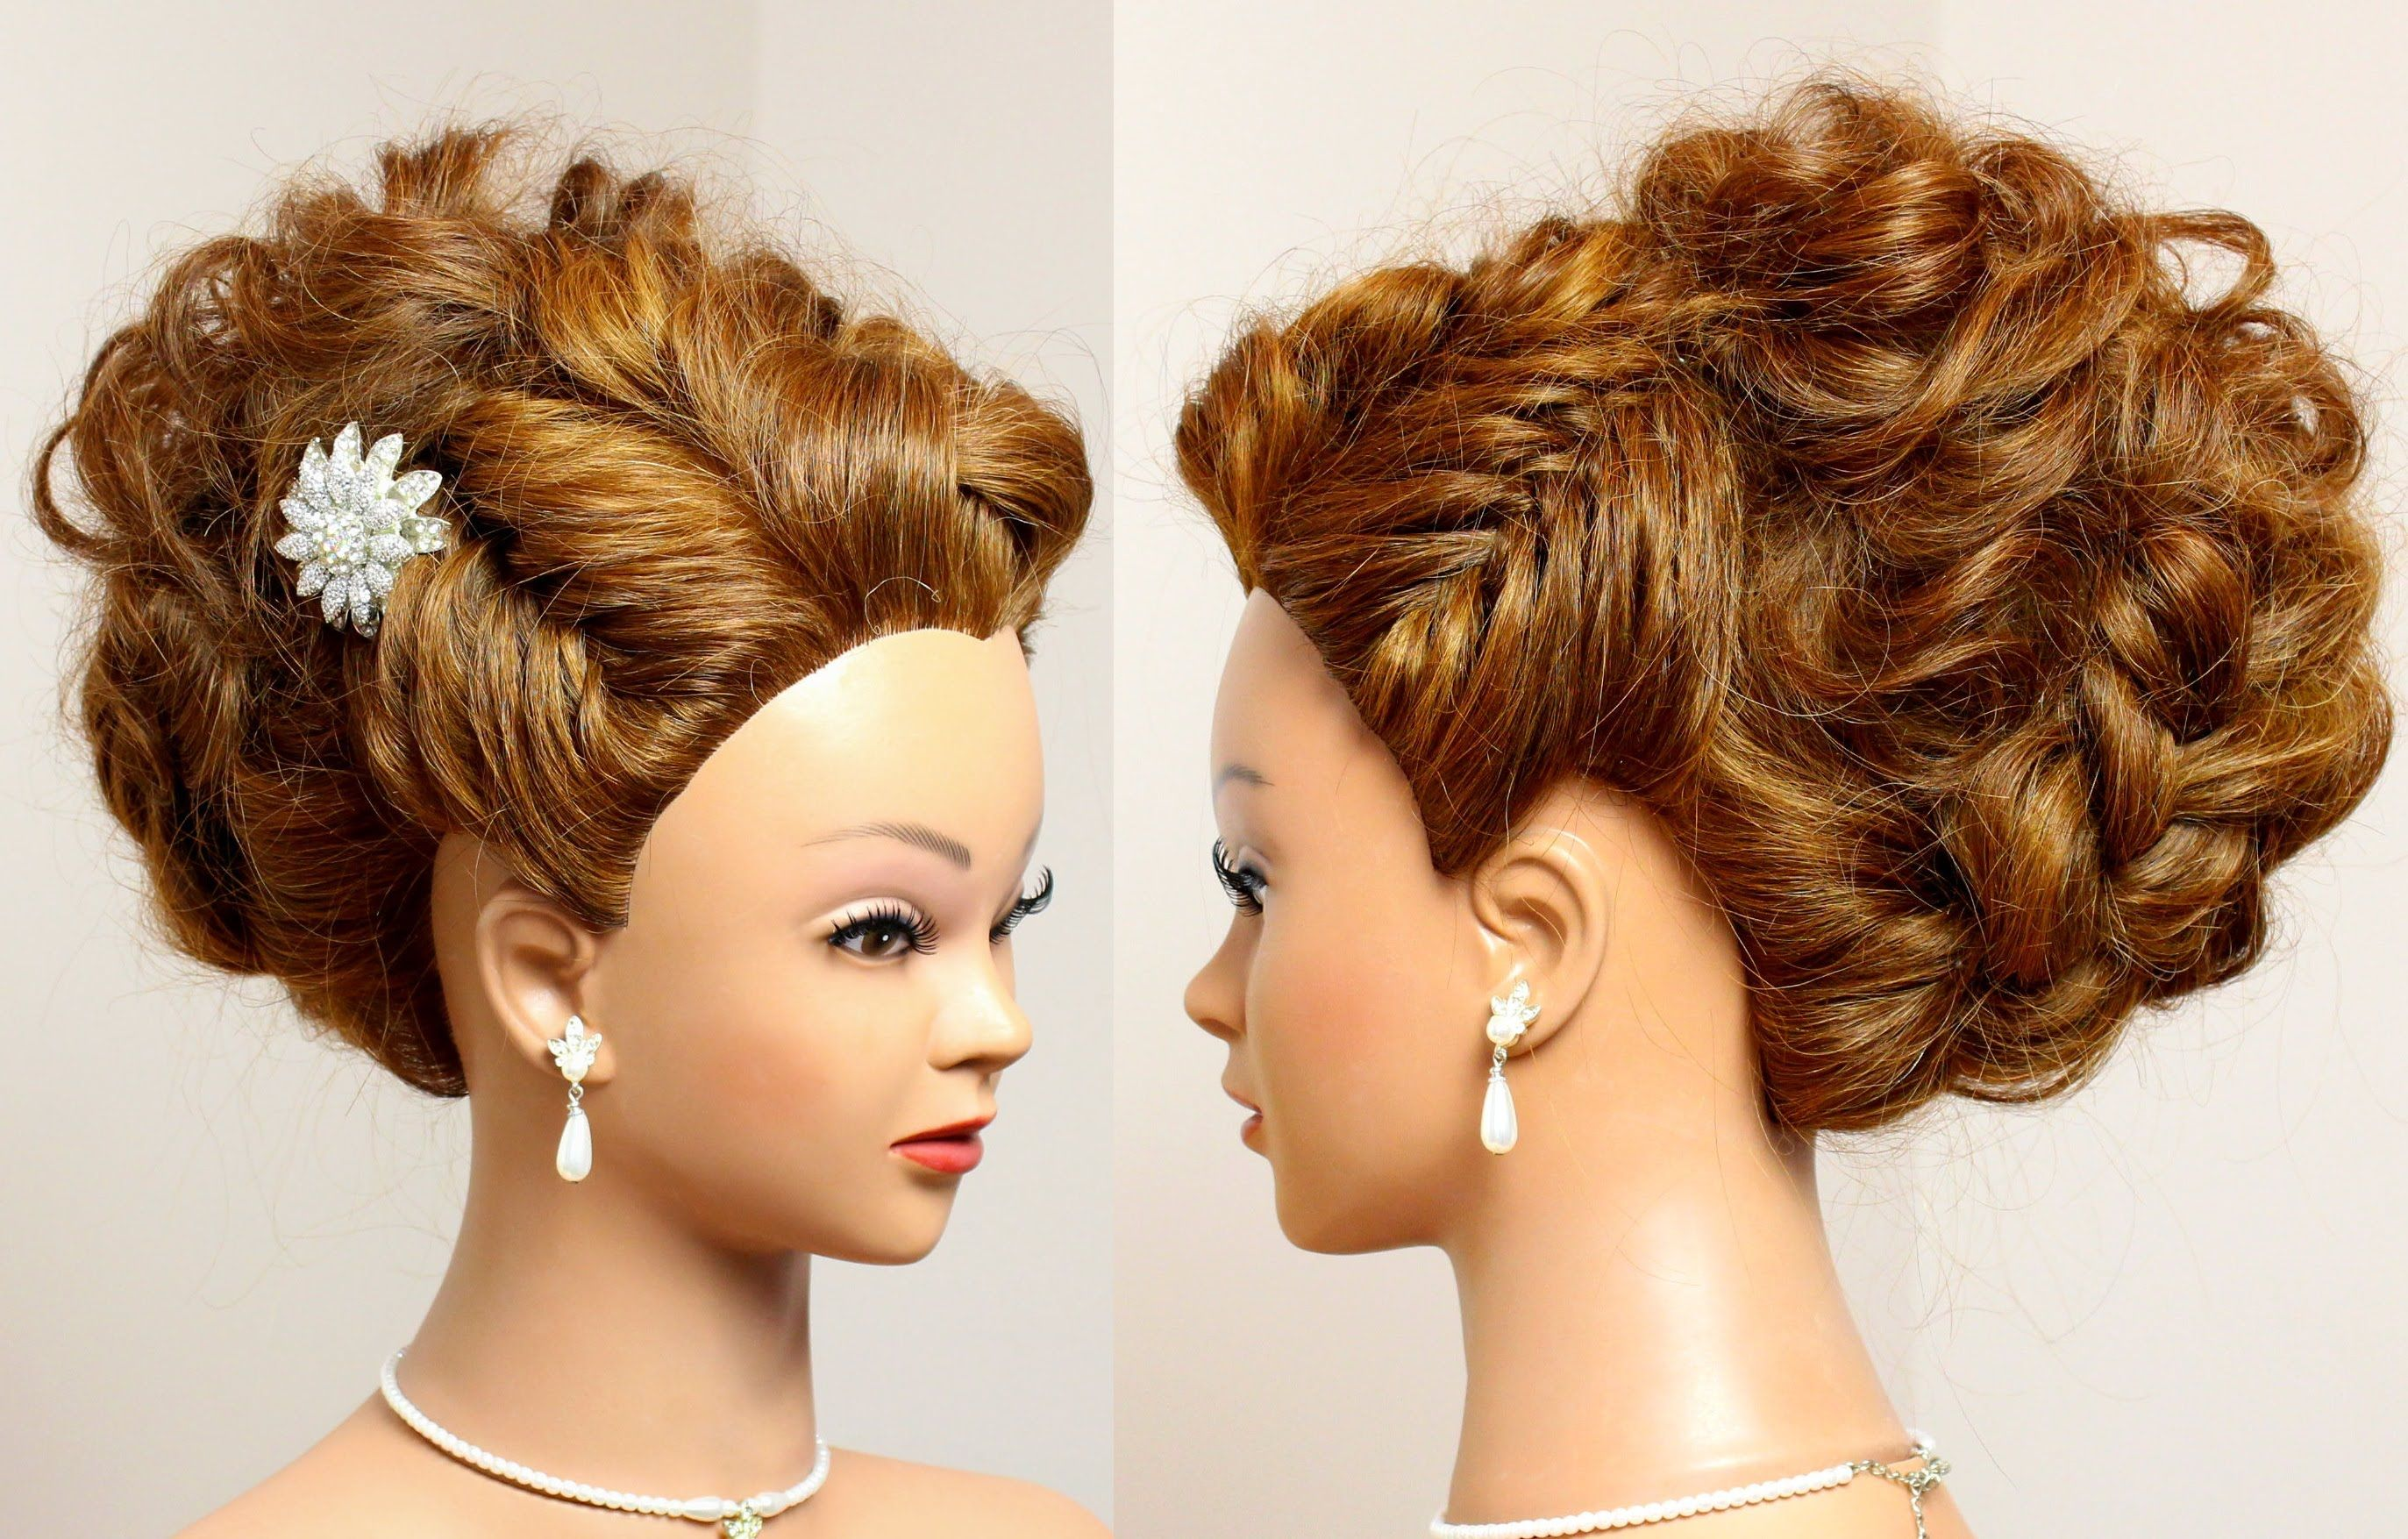 Prom Wedding Updo For Long Hair Tutorial Youtube 6 Coiff Vido